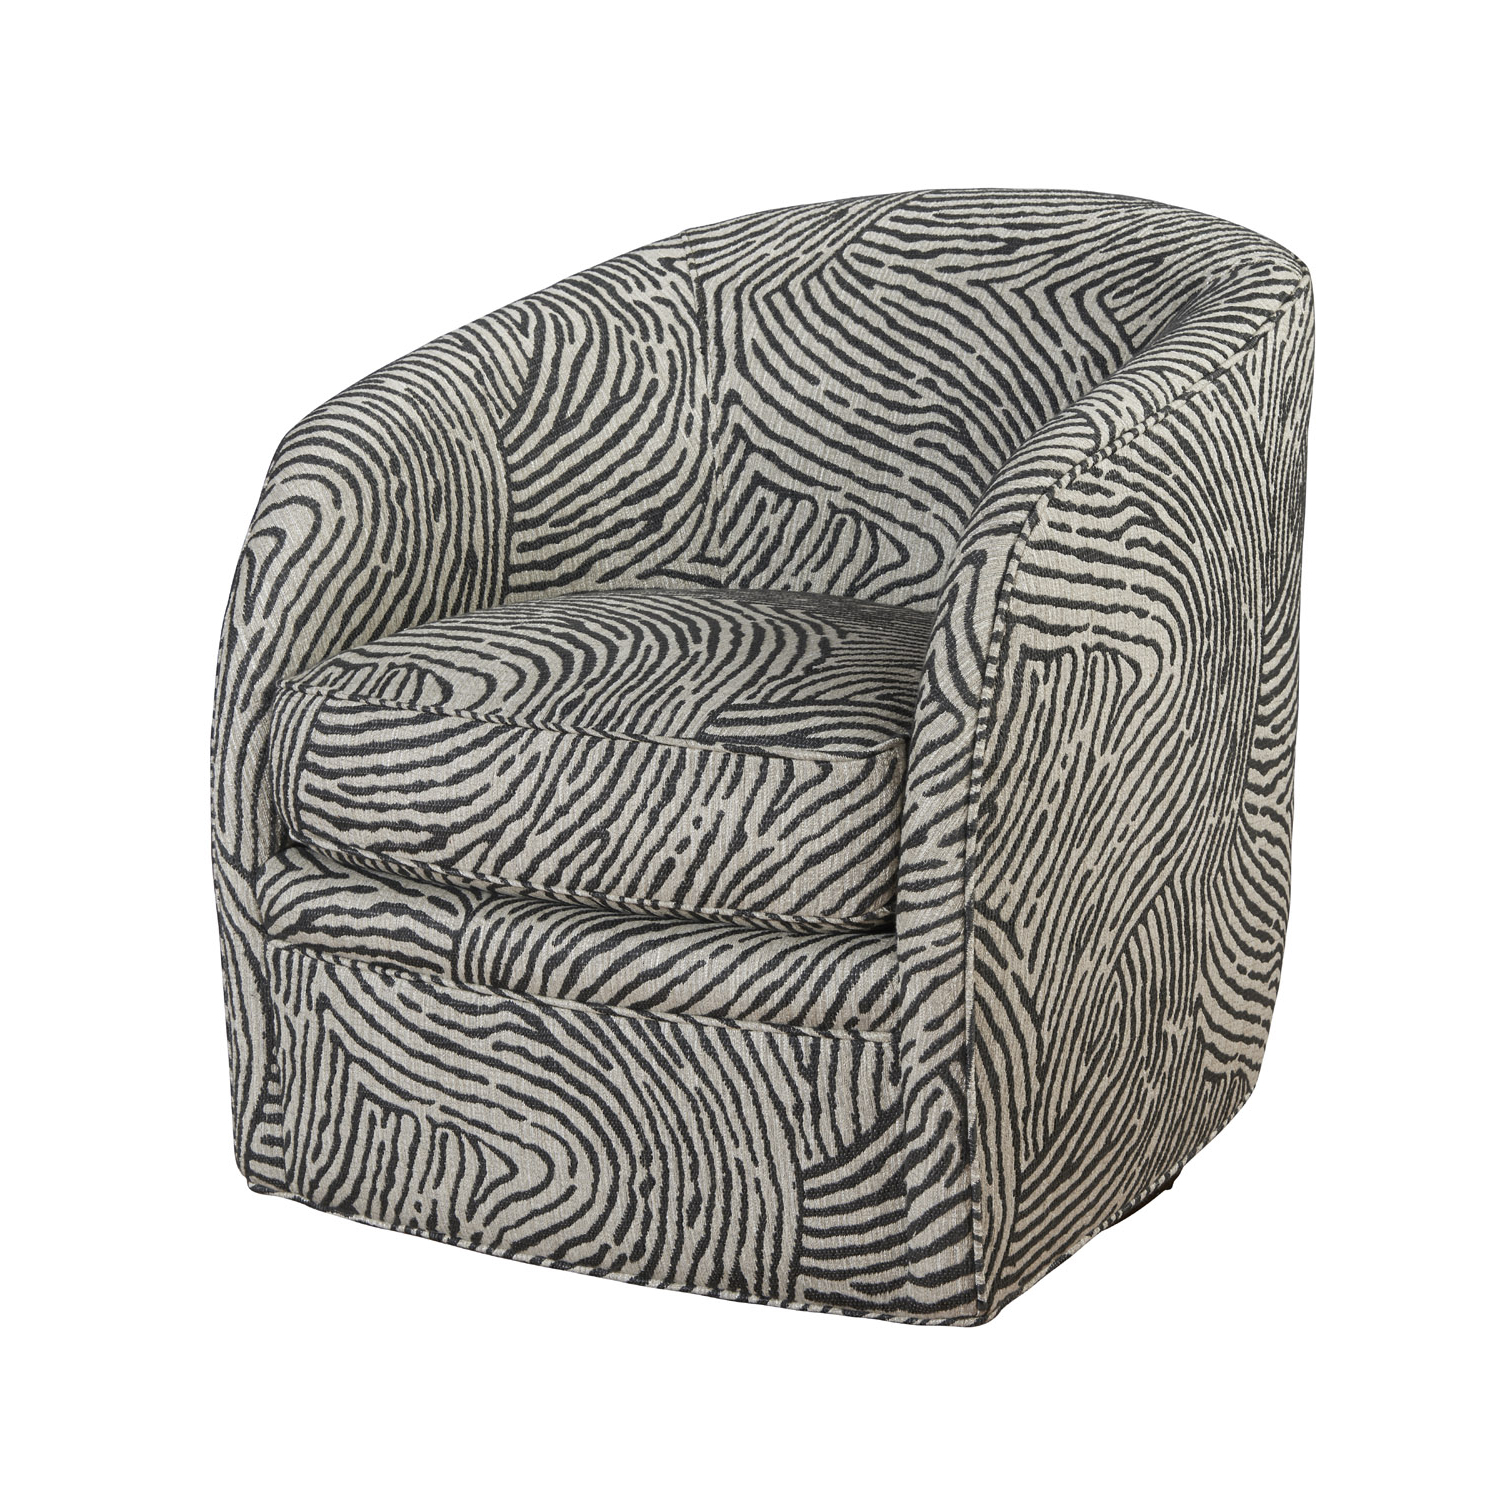 Charcoal Swivel Chairs In Most Recent Francesca Swivel Chair – Sunniva Charcoal (View 4 of 20)